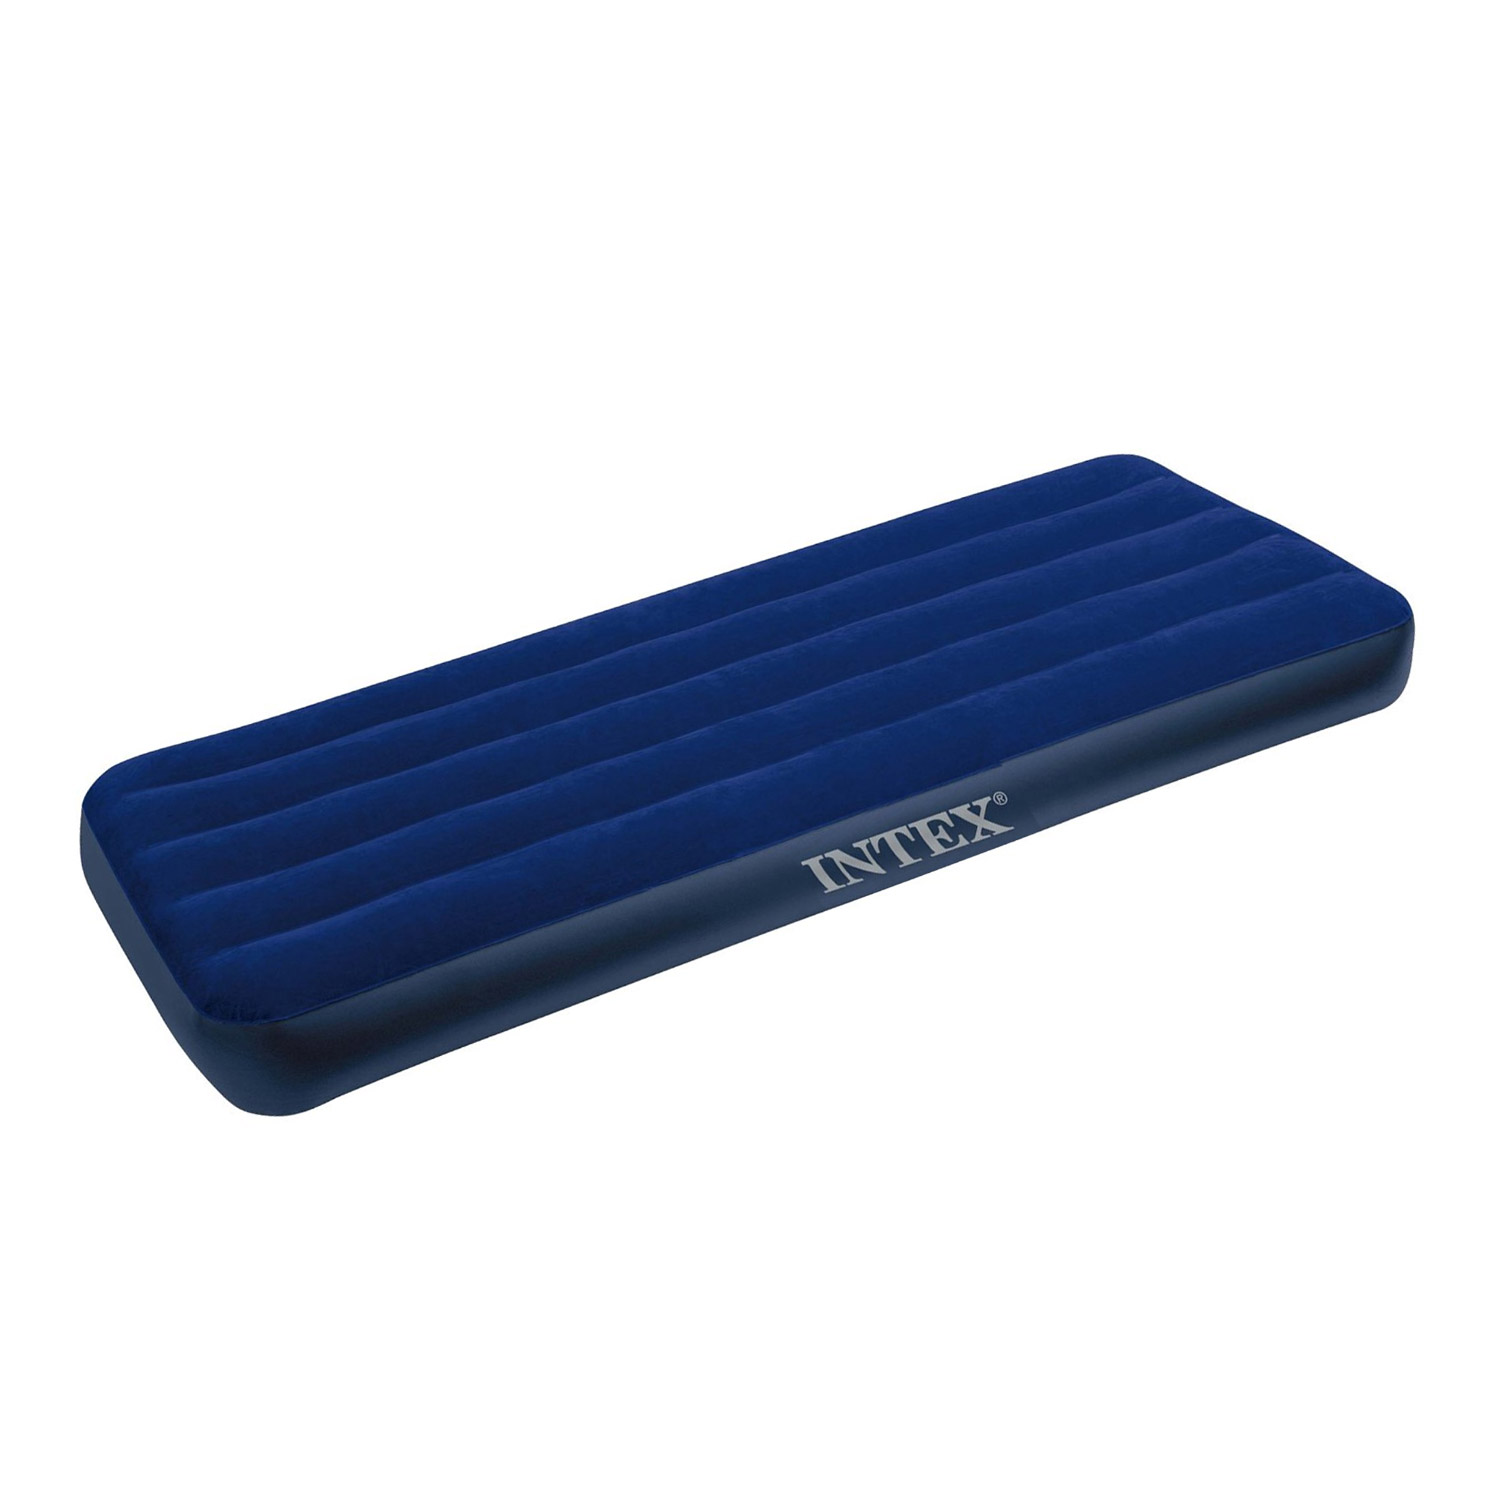 Matelas gonflable 1 personne lit d 39 appoint intex downy - Lit gonflable intex ...